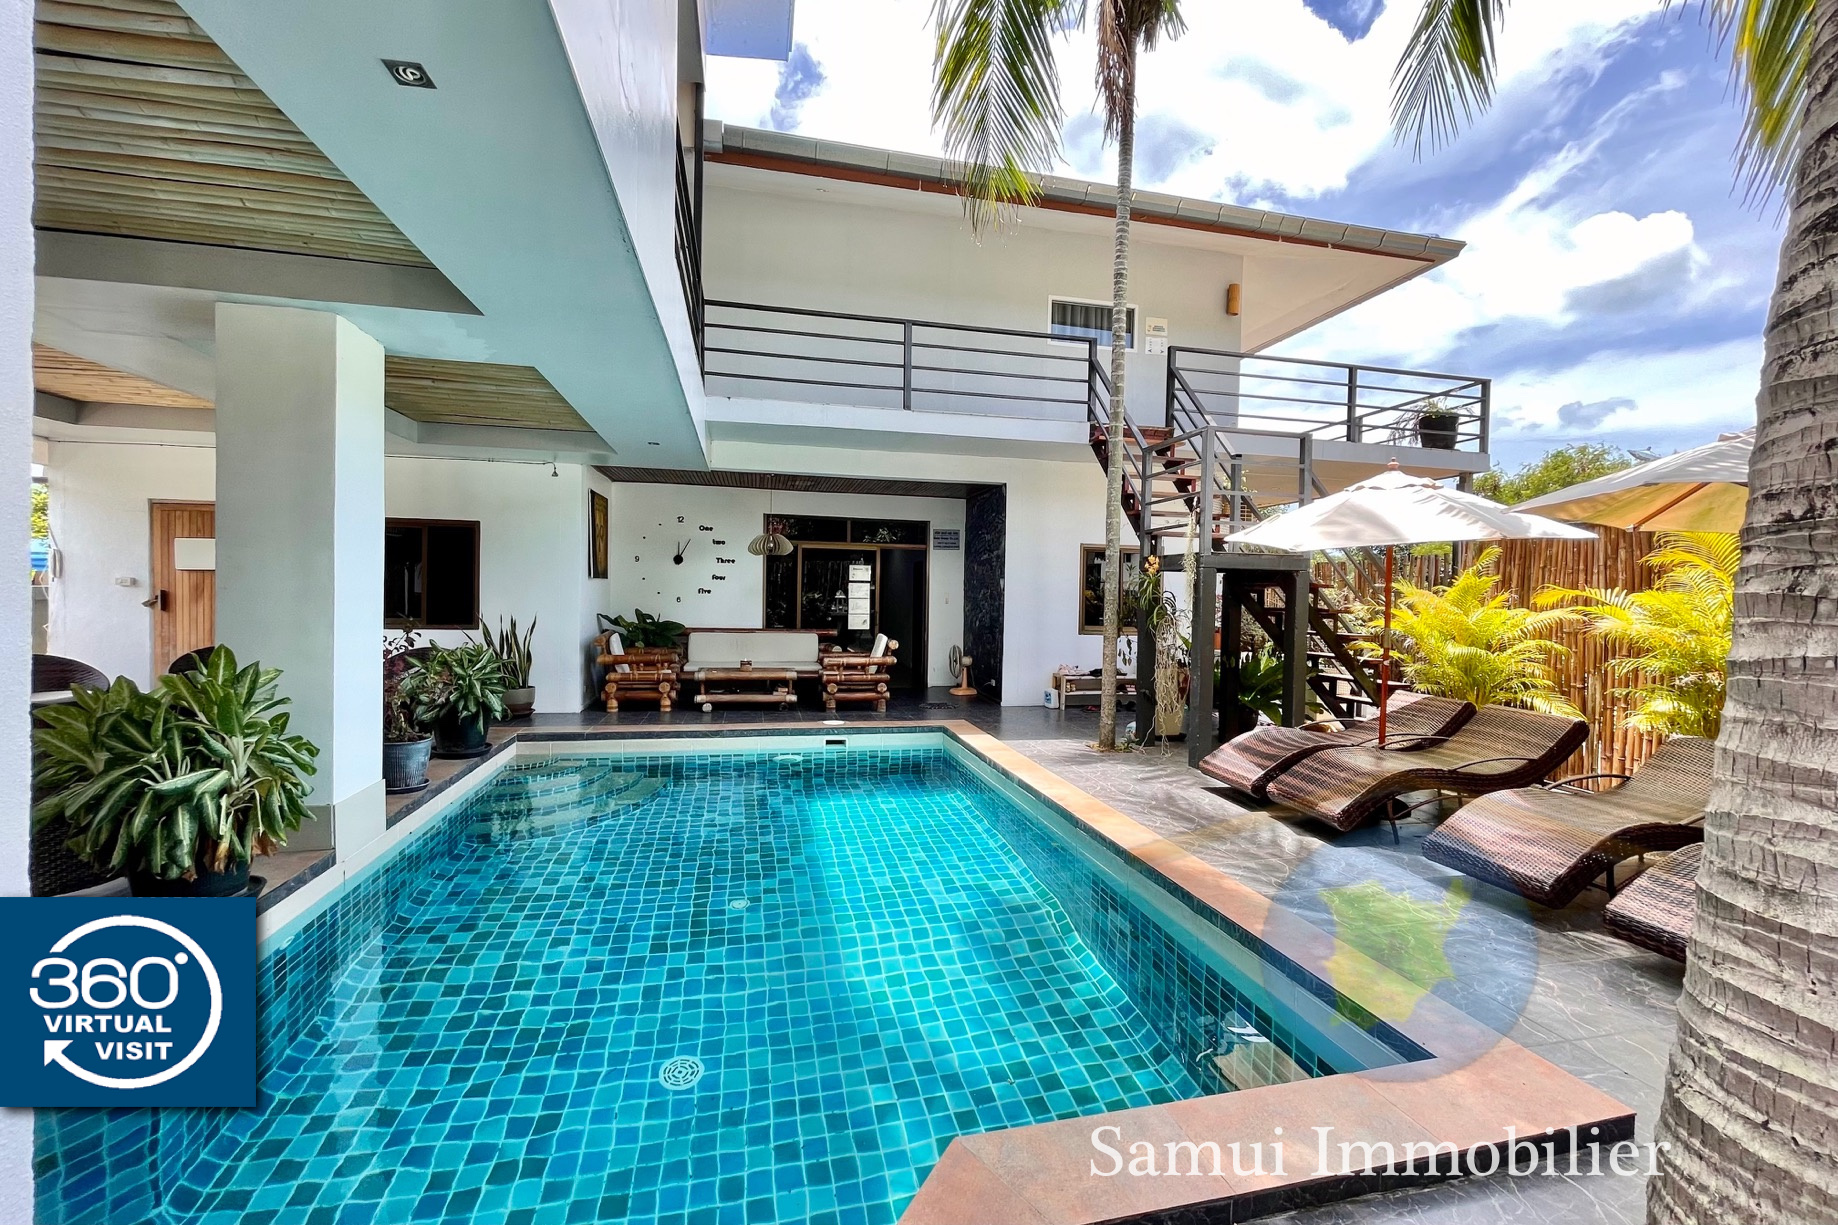 Guesthouse for sale - 11 bedrooms - Chaweng